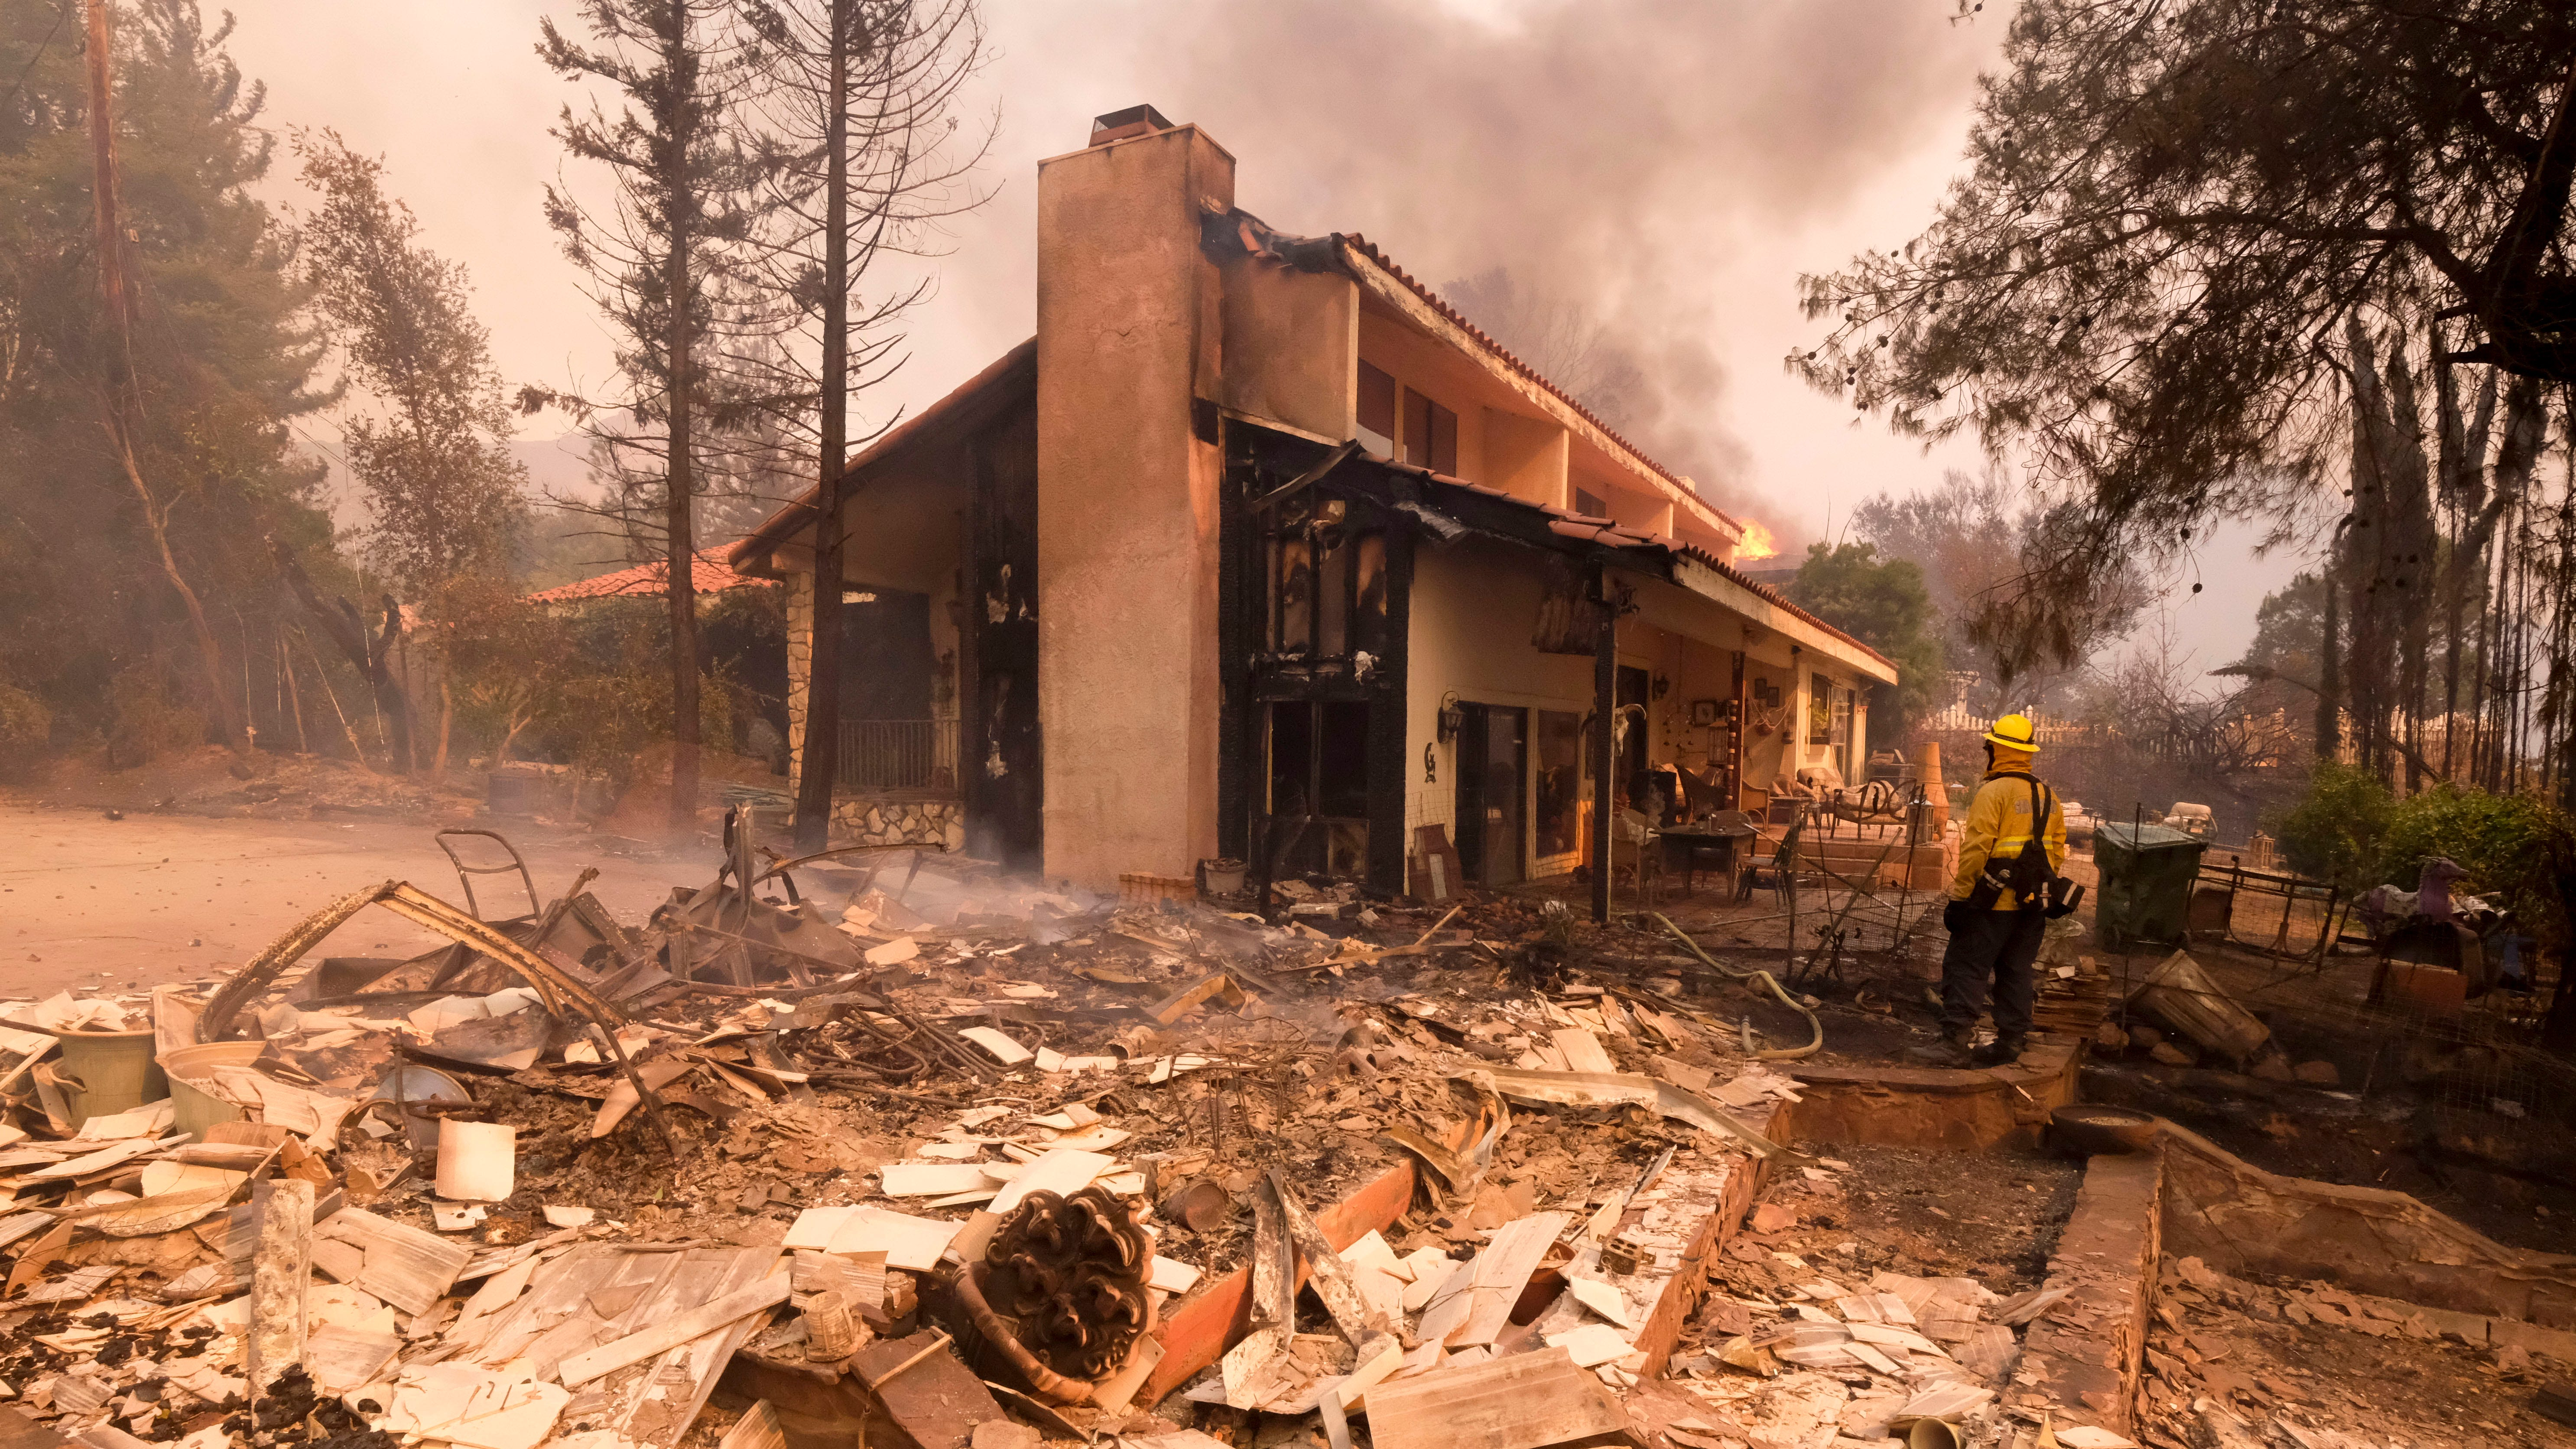 Will the California wildfires impact homeowners insurance in New Jersey?